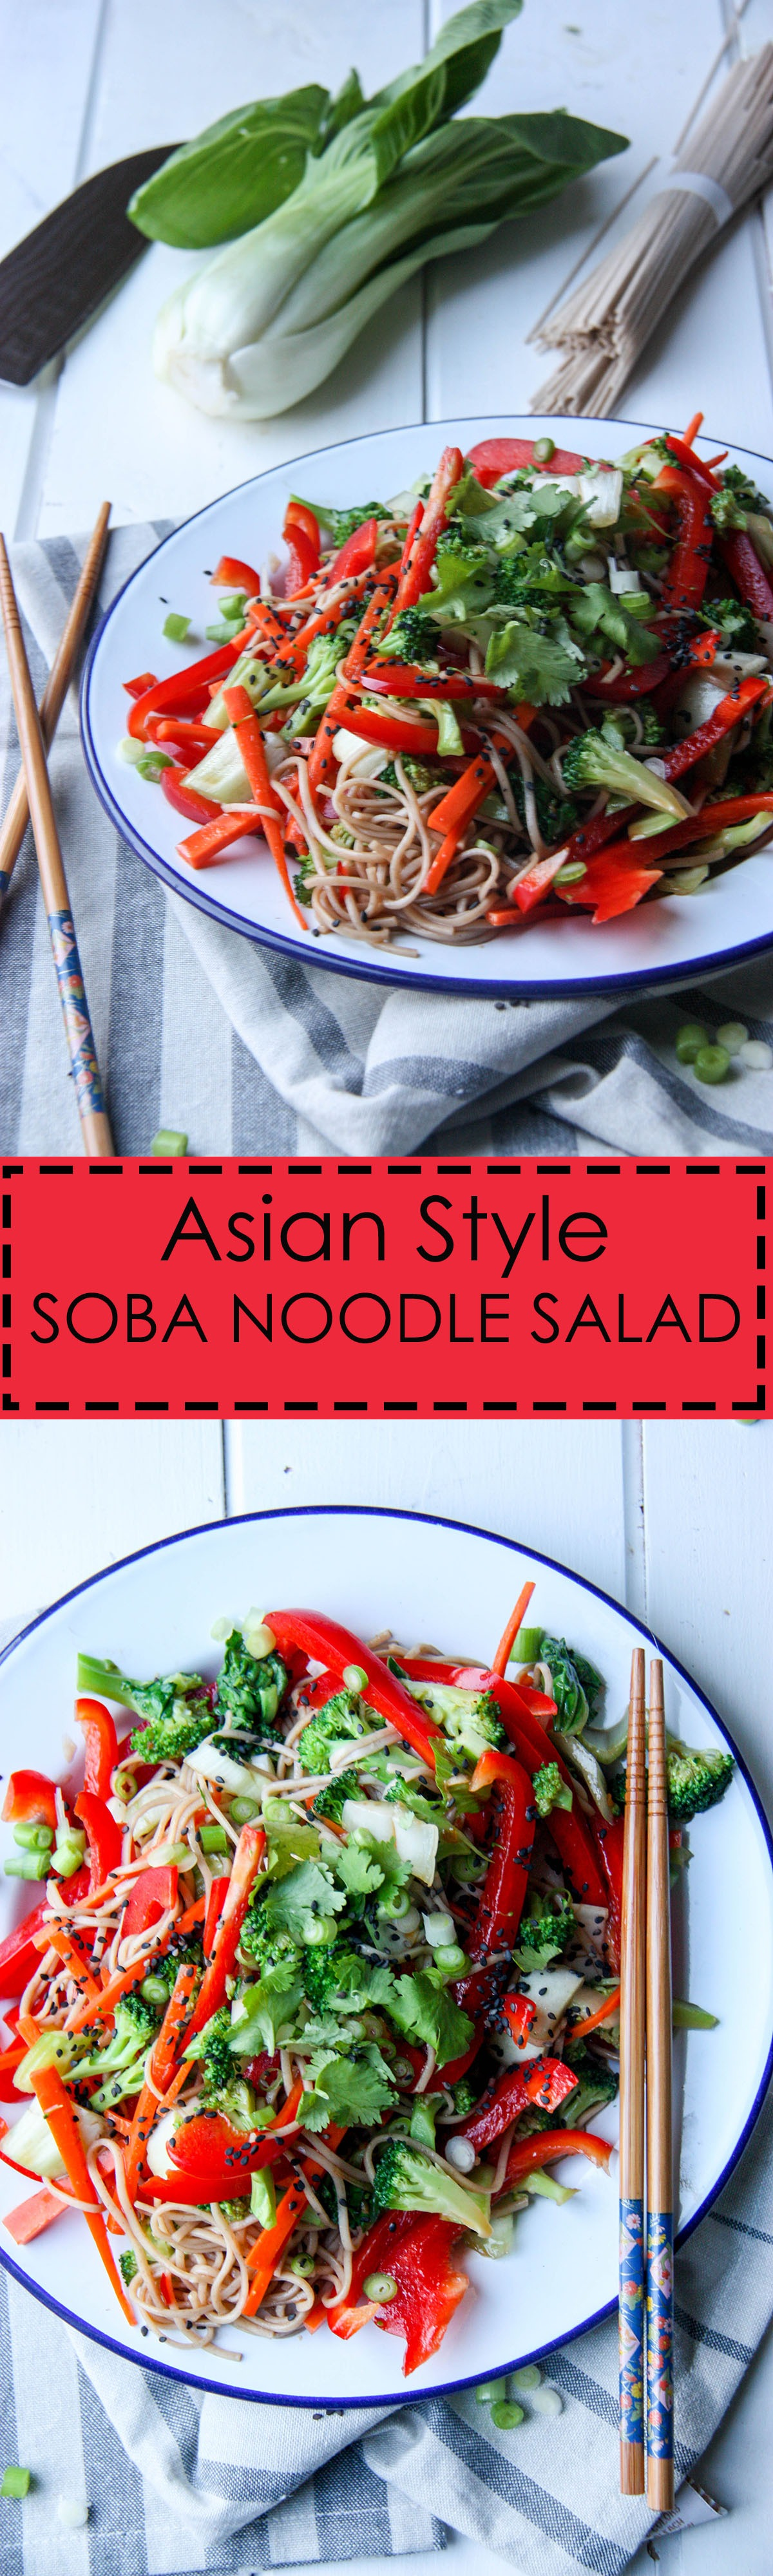 Soba Noodle Salad www.thehomecookskitchen.com Perfect for when you need a healthy, fresh and delicious meal